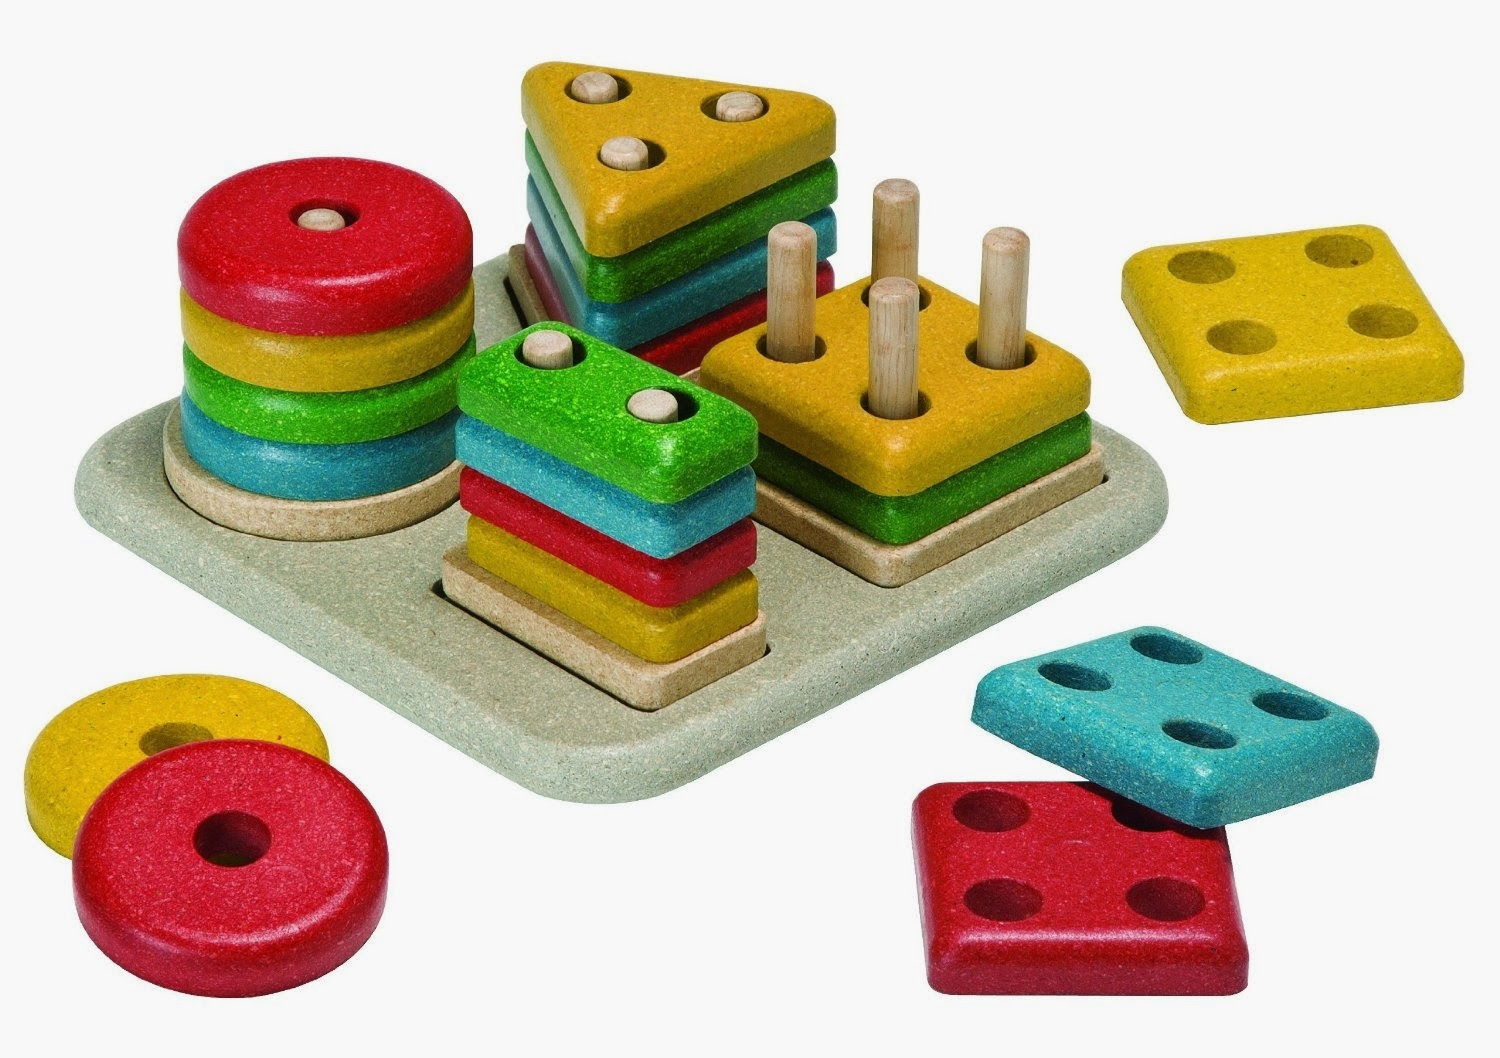 Preschool Sorting Toy!